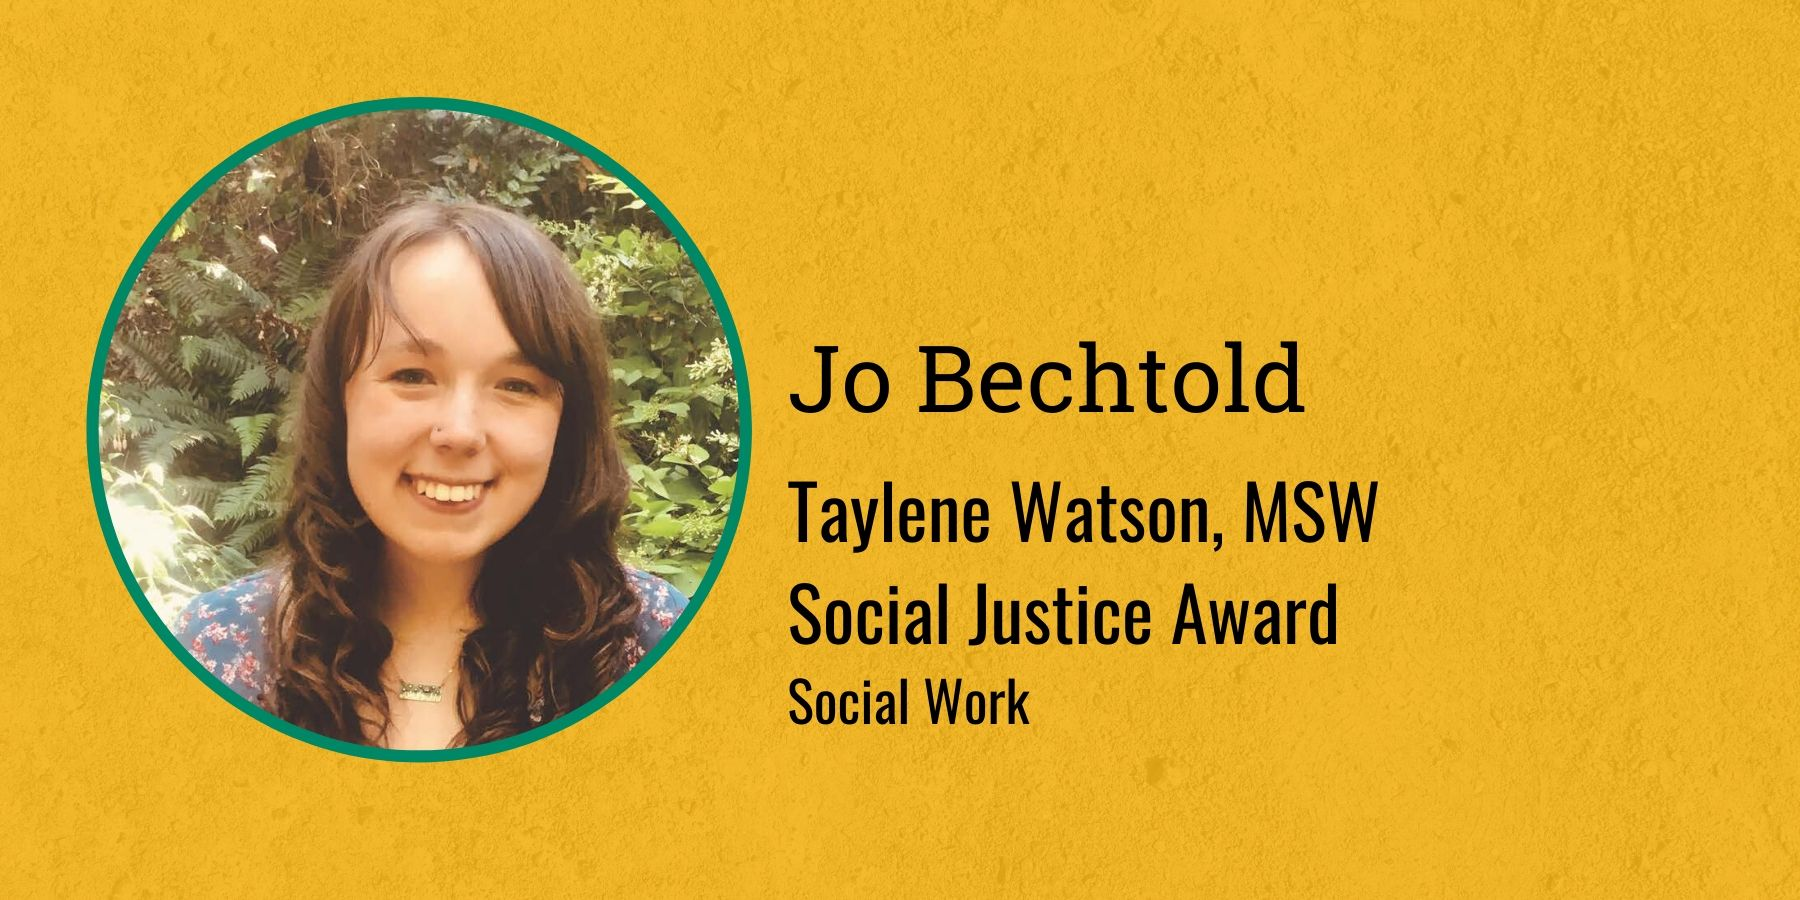 Photo of Jo Bechtold and Text Taylene Watson, MSW Social Justice Award, Social Work